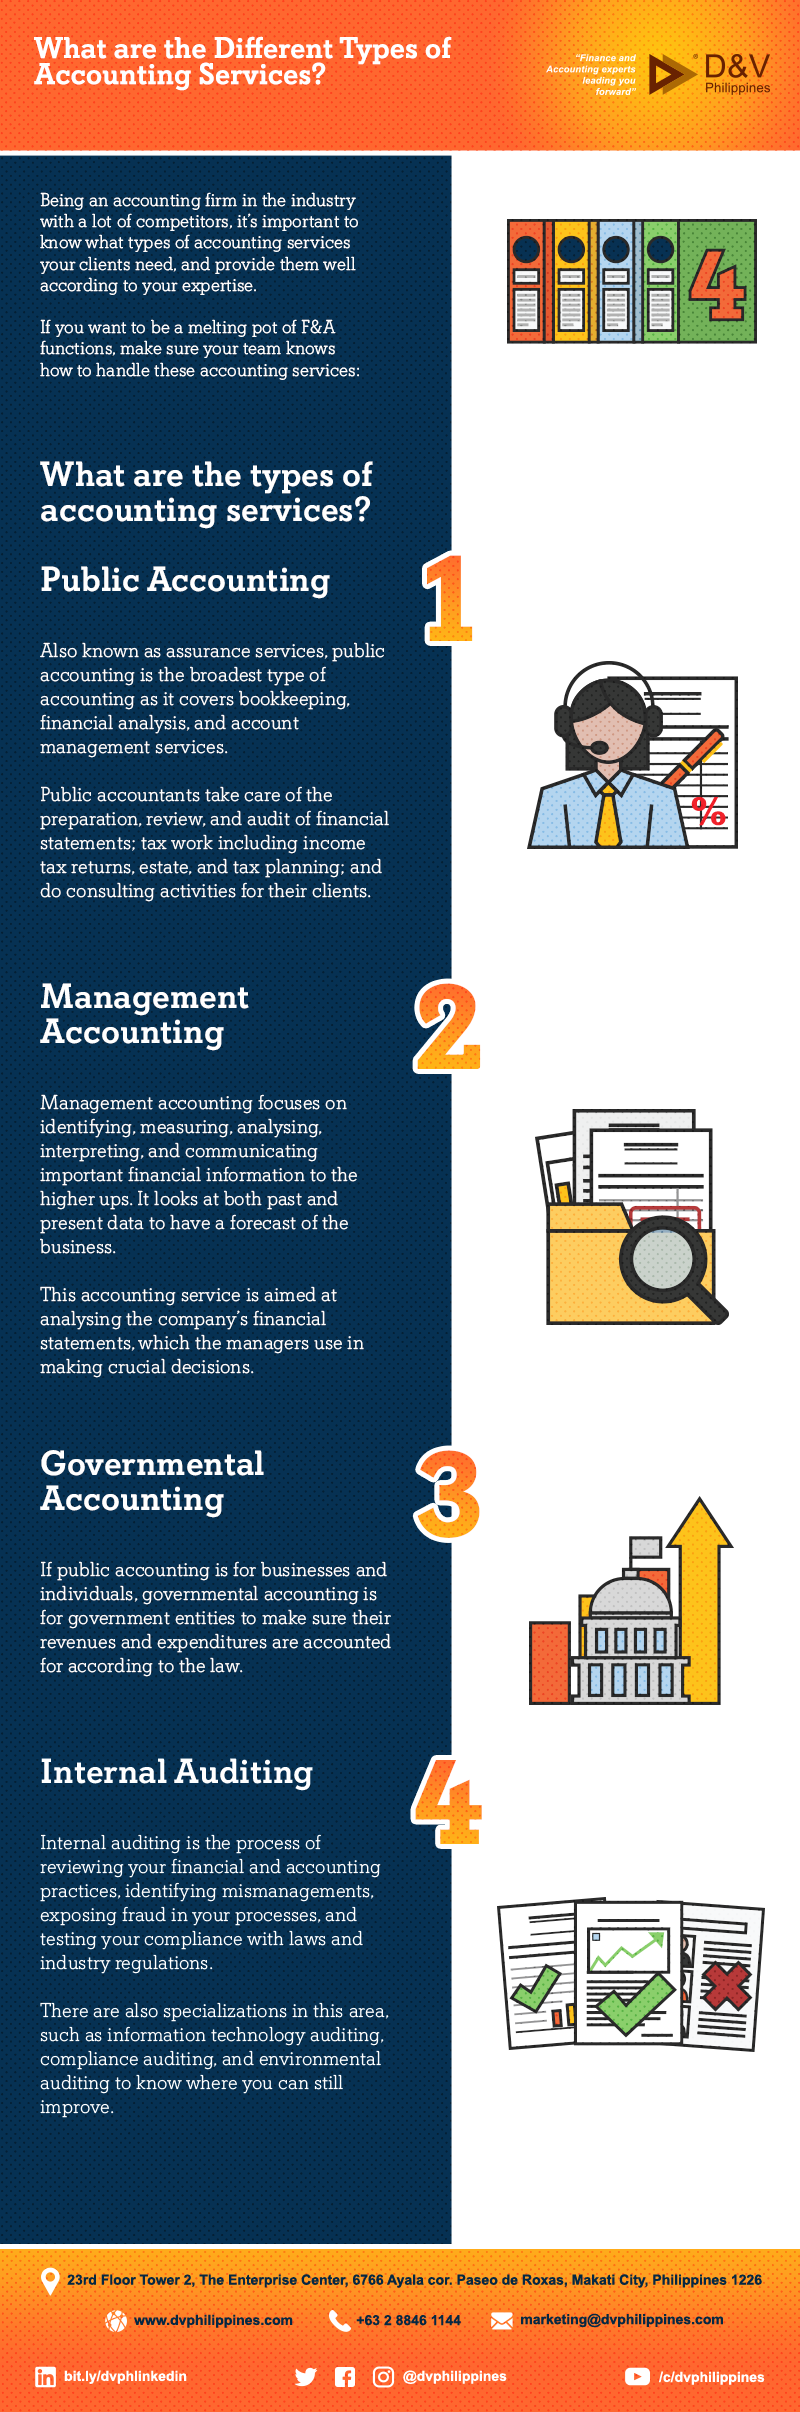 Infog_W_C_Title_What-are-the-Different-Types-of-Accounting-ServicesMain